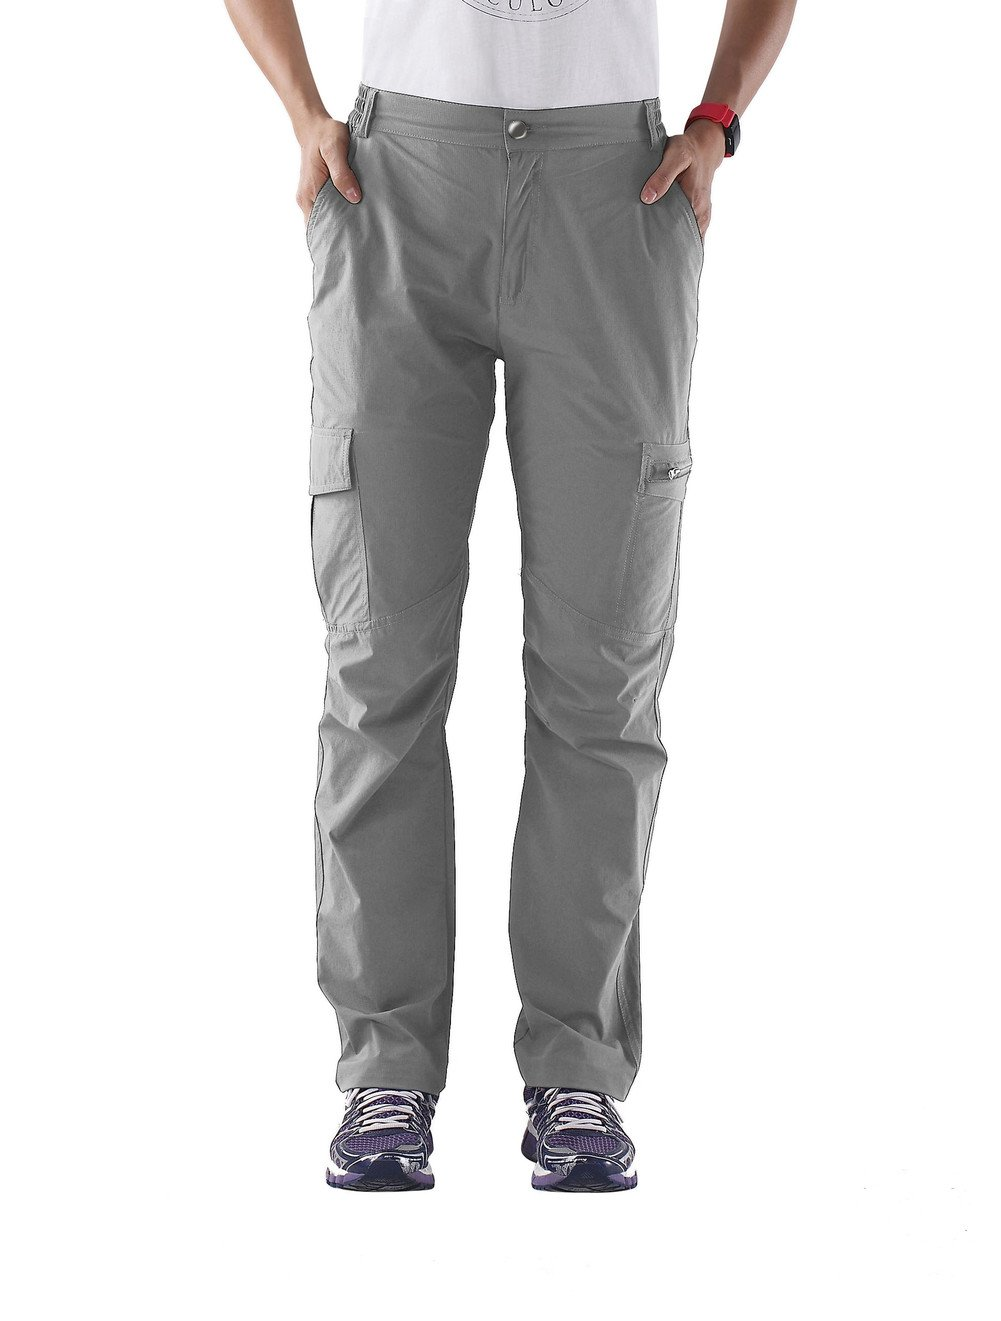 Nonwe Women's Outdoor Light Weight Breathable Quick Dry Pants Light Gray S/32 Inseam